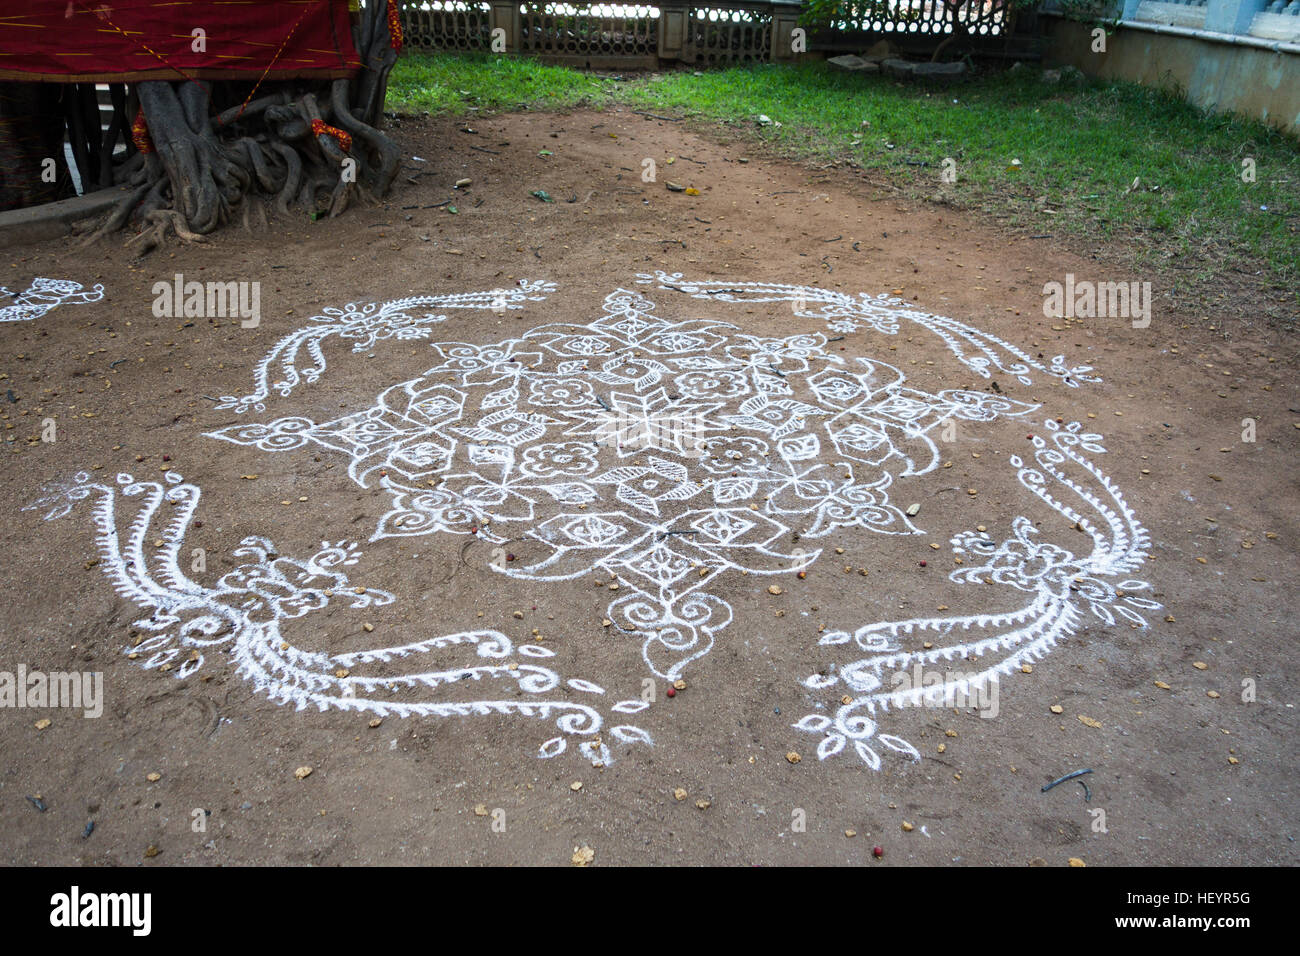 Rangoli design on a school courtyard in Hyderabad,India Stock Photo